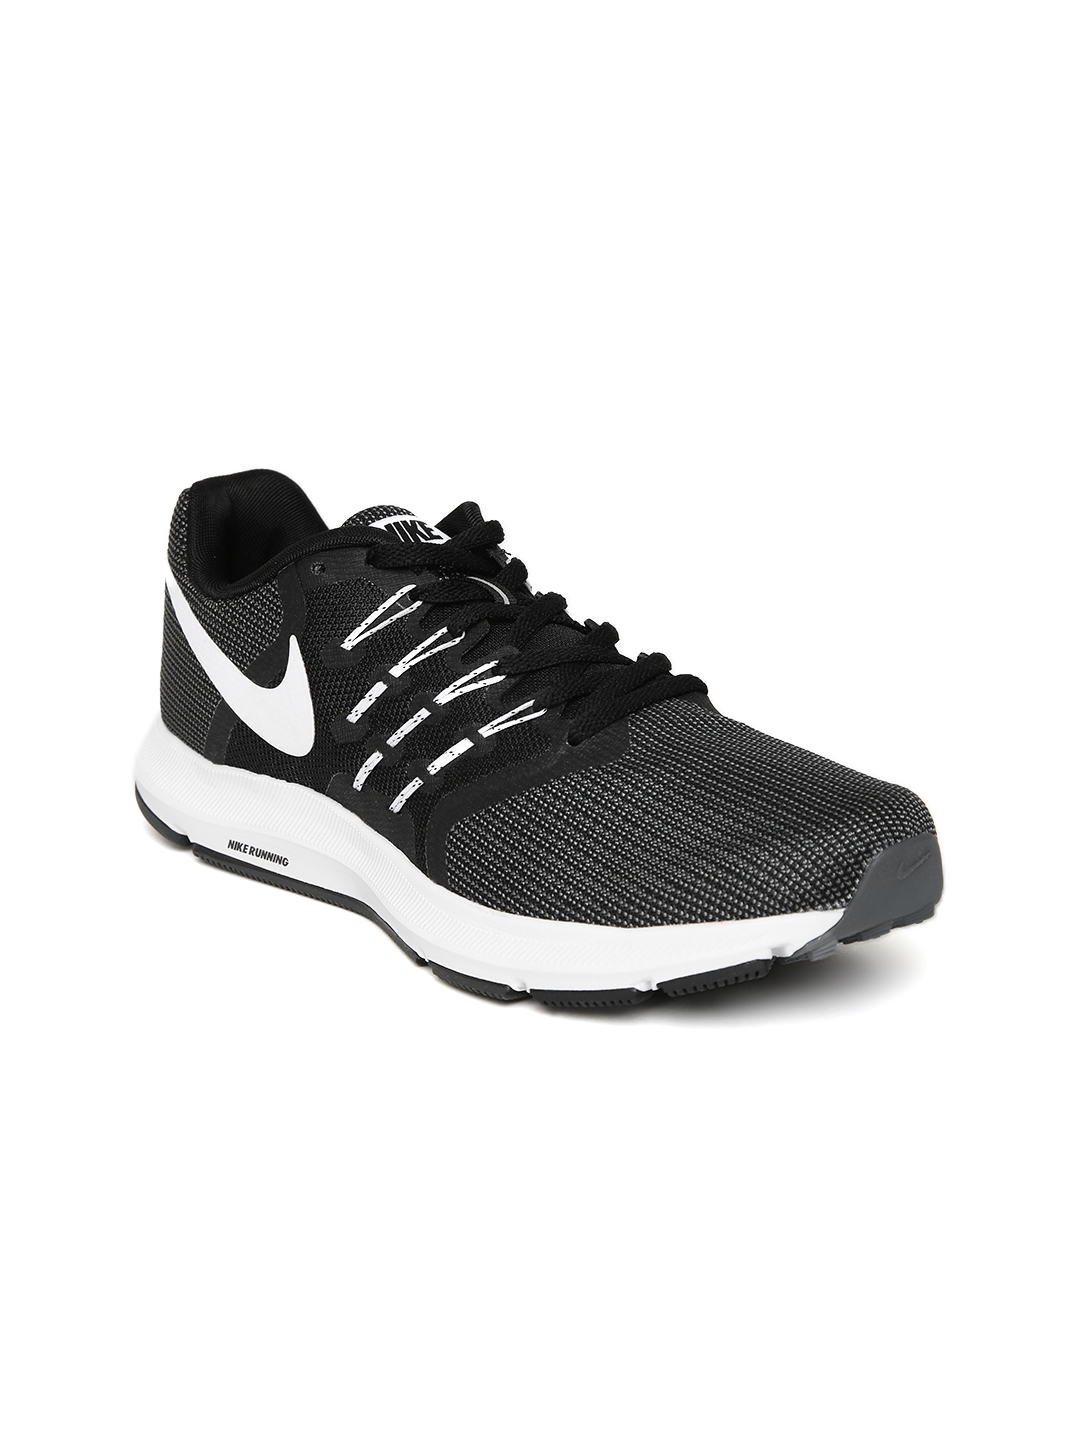 18081d6e8dc95b Buy Nike Women Grey Swift Running Shoes - Sports Shoes for Women ...